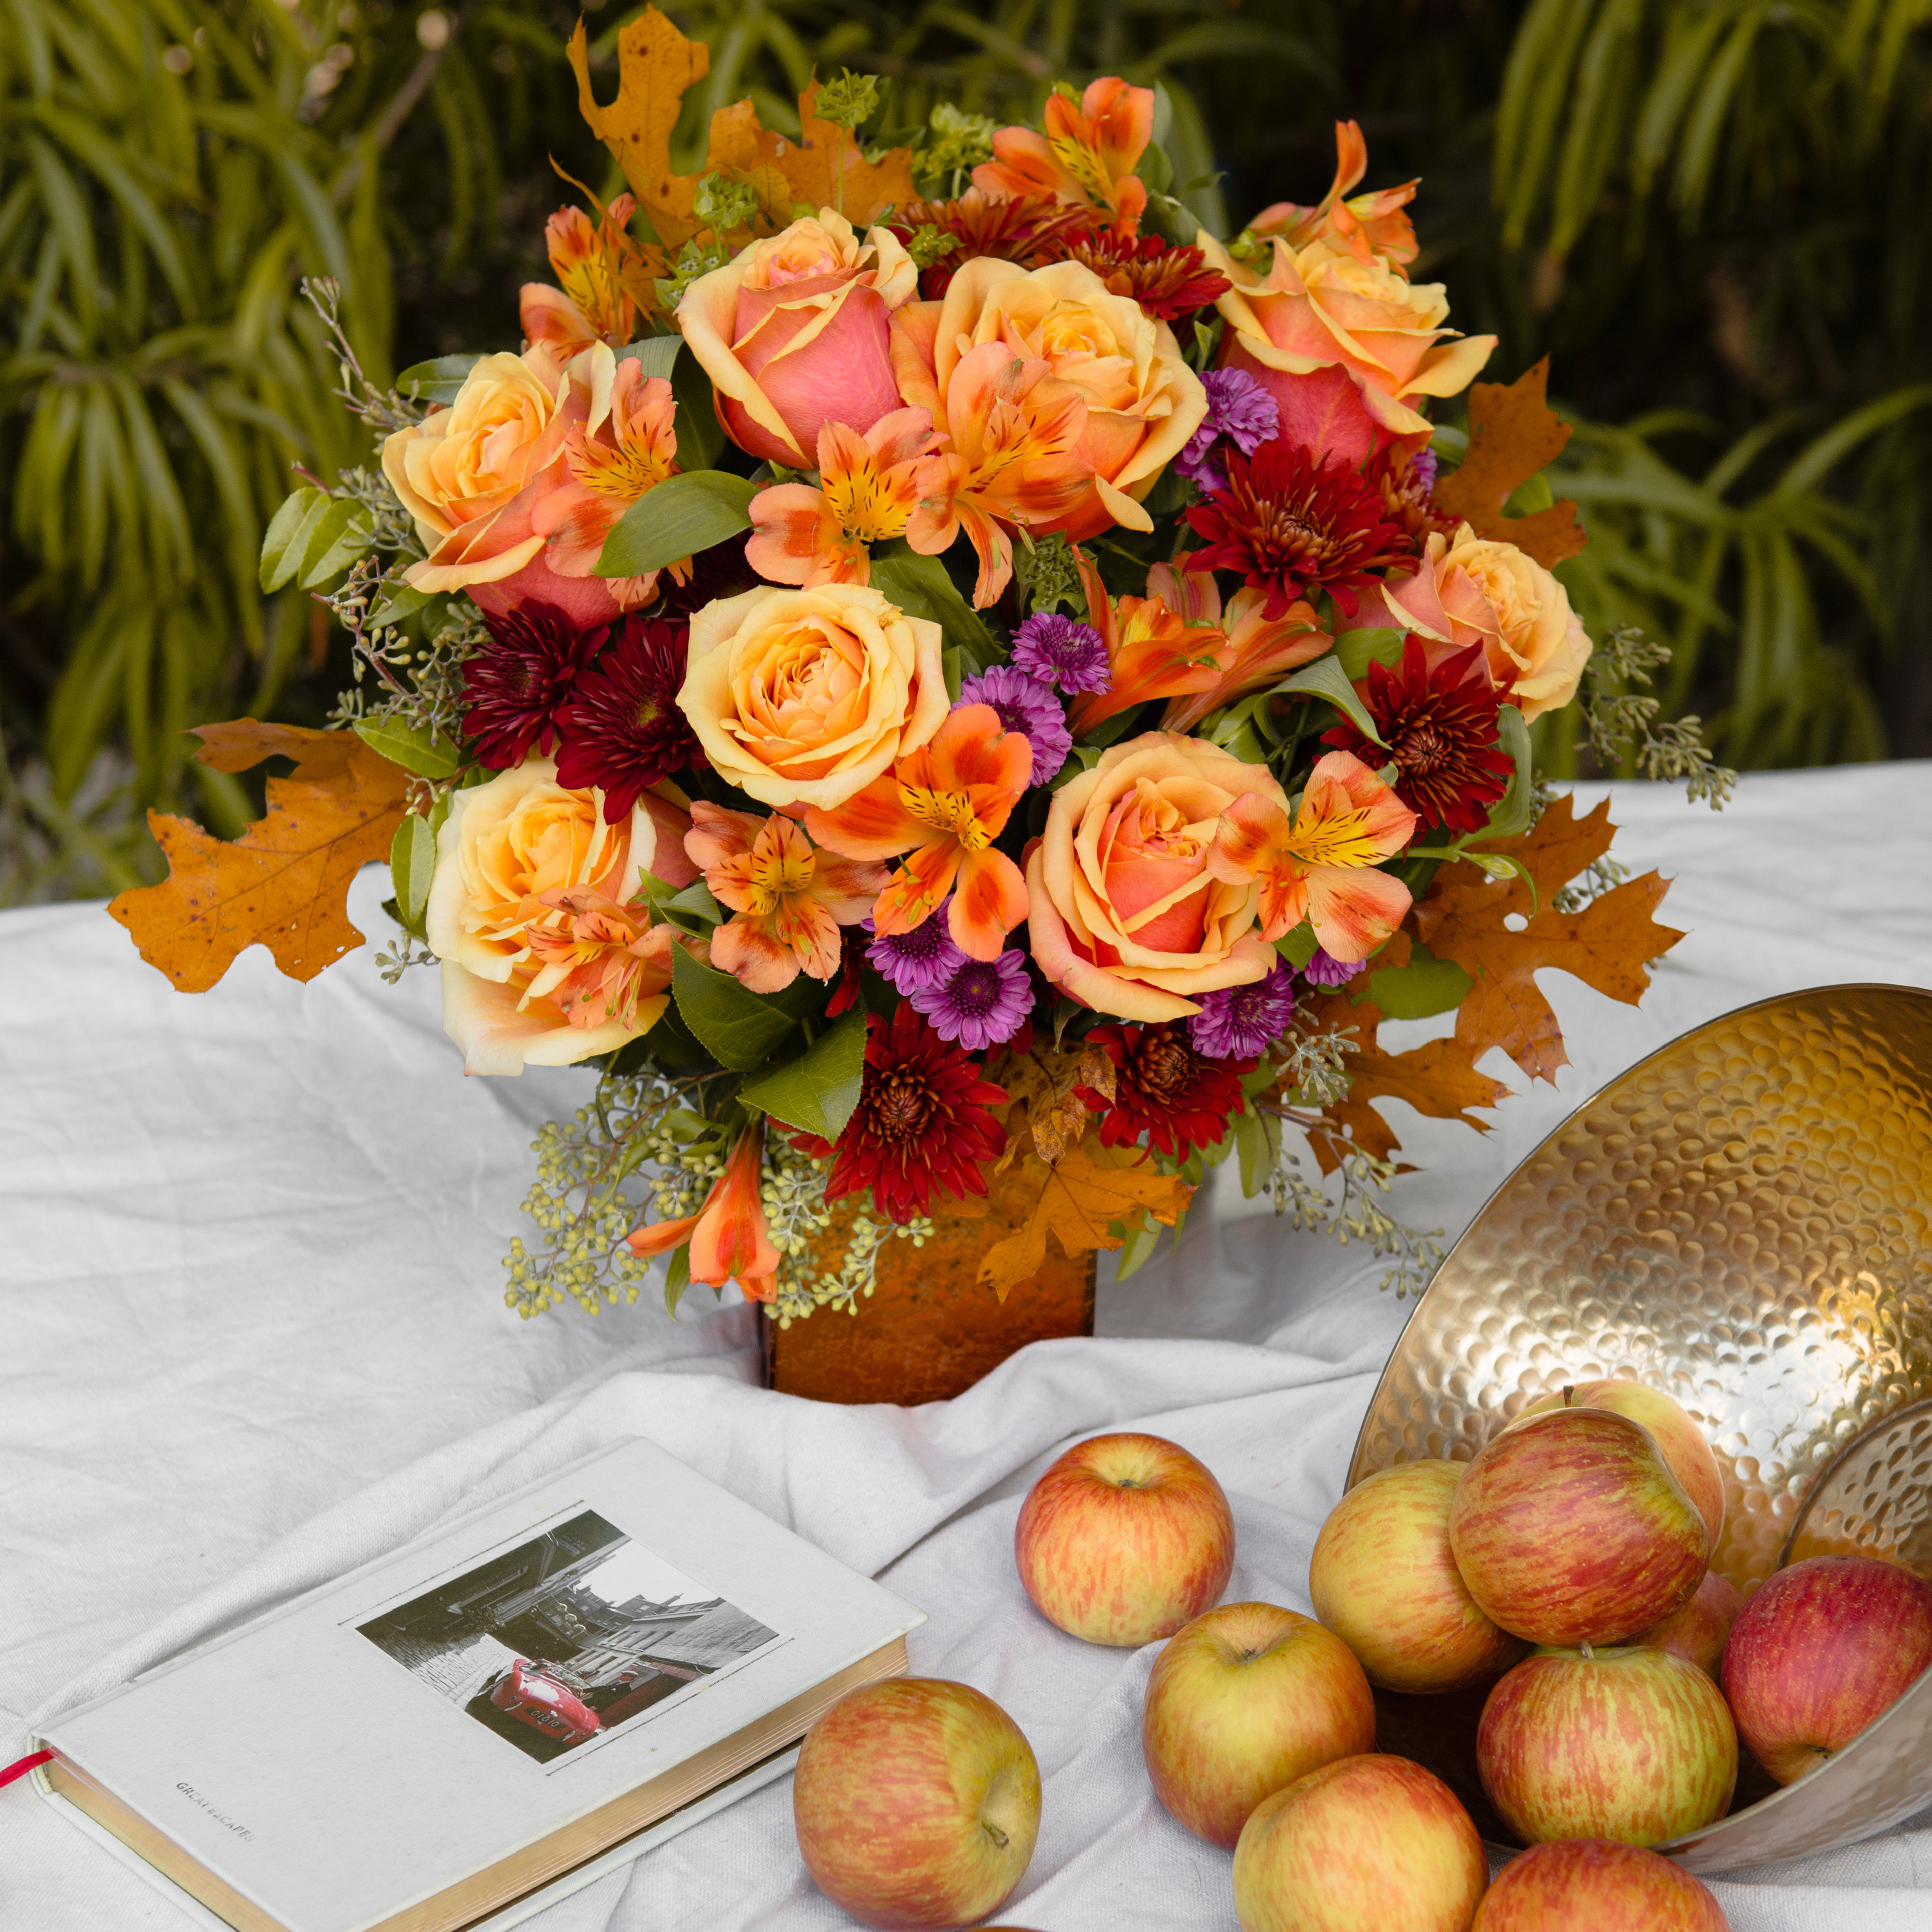 Orange roses with leaves and more on table with apples